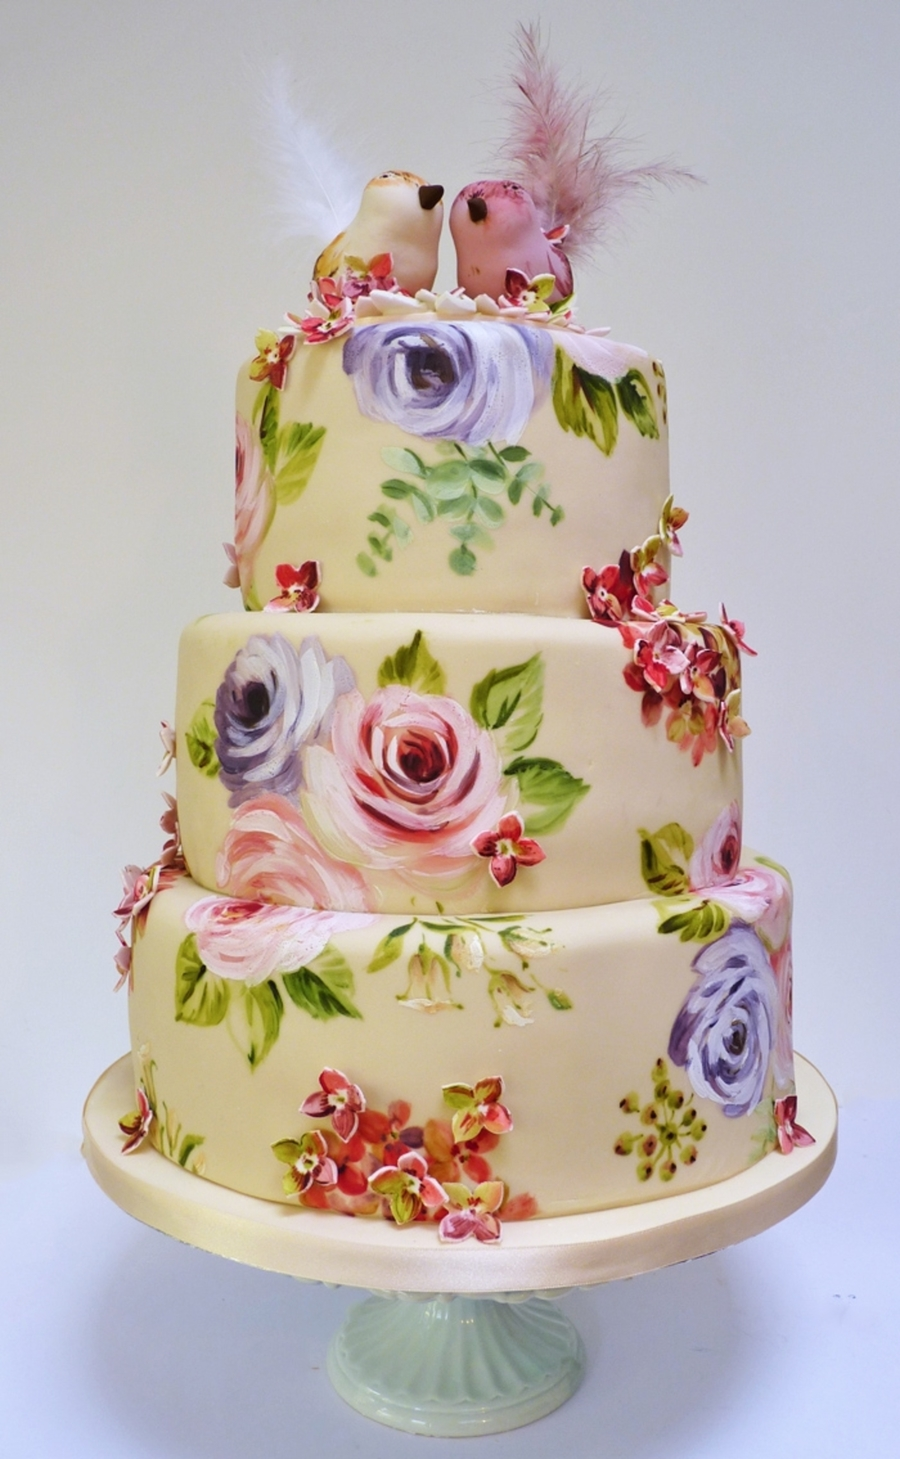 Painted Rose And Hydrangea Cake  on Cake Central